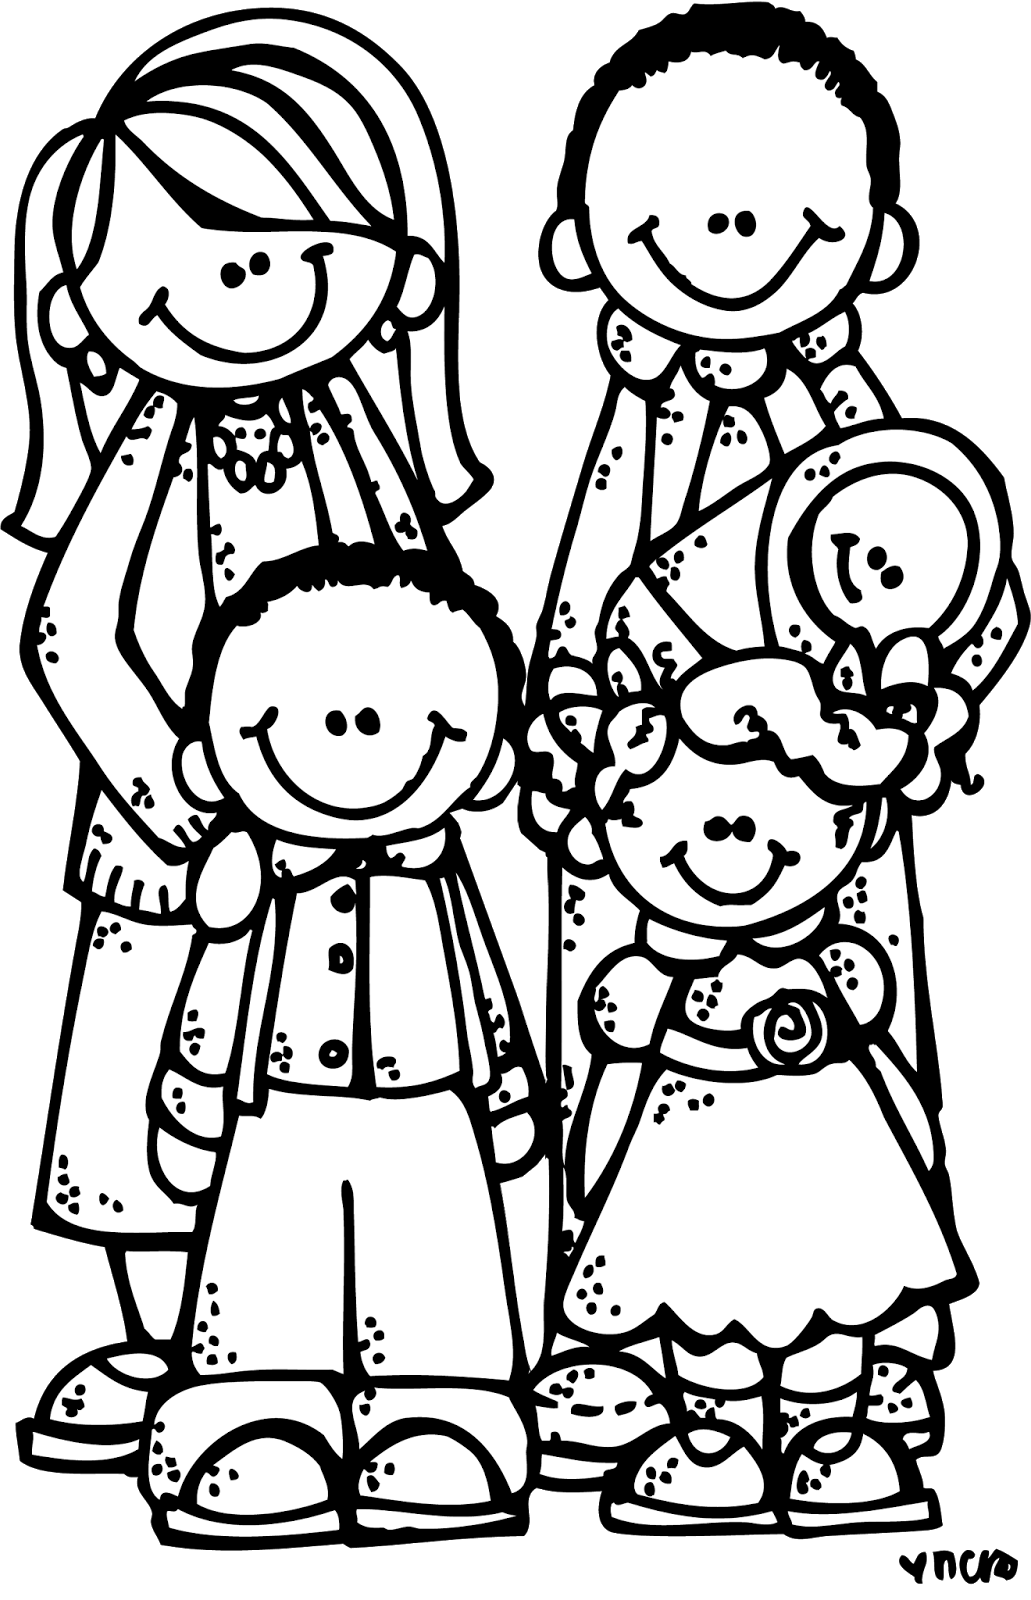 family clipart coloring familyacmelonheadz13bwpng 10311600 pixels family coloring clipart